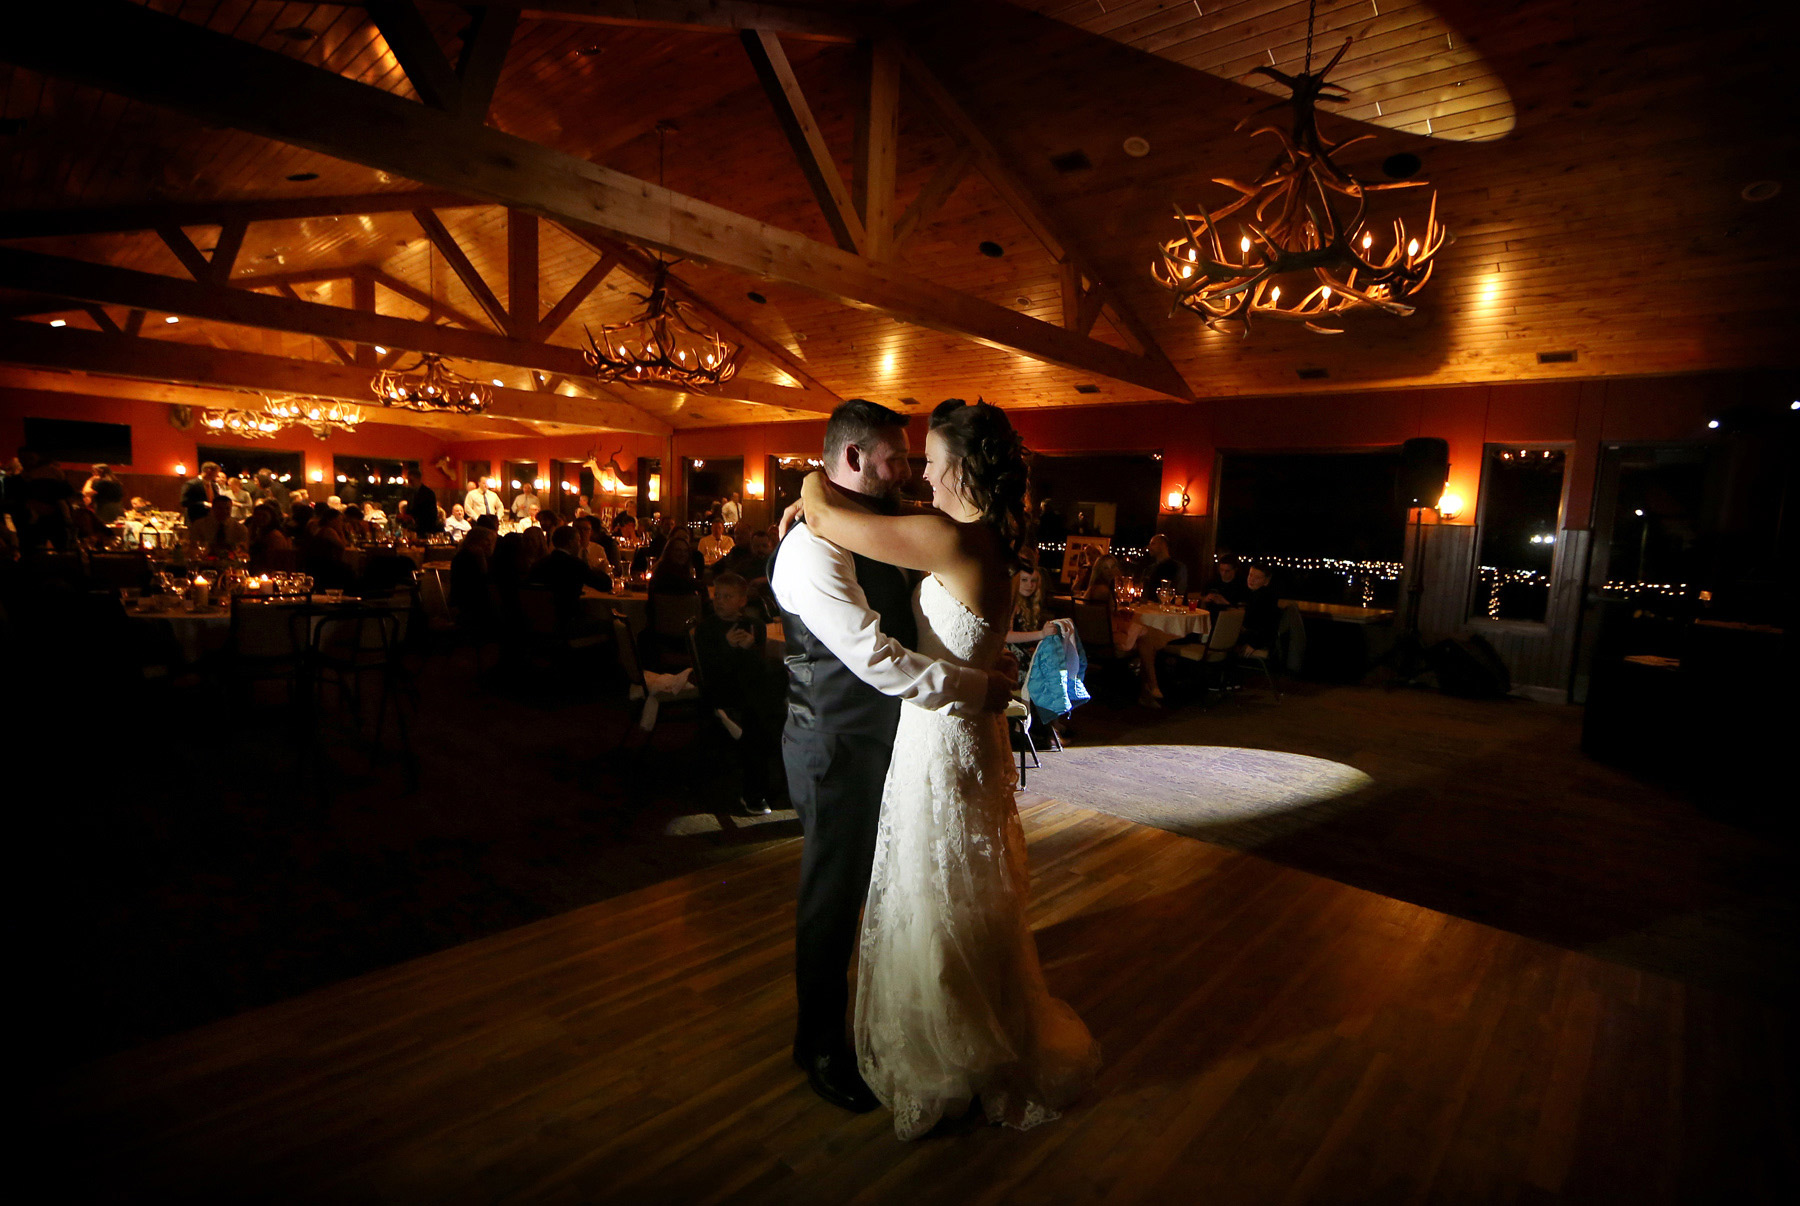 14-Minneapolis-Minnesota-Wedding-Photography-by-Vick-Photography-Prior-Lake-Horse-and-Hunt-Club-Rustic-First-Dance-Reception-Night-Sarah-and-Steve.jpg